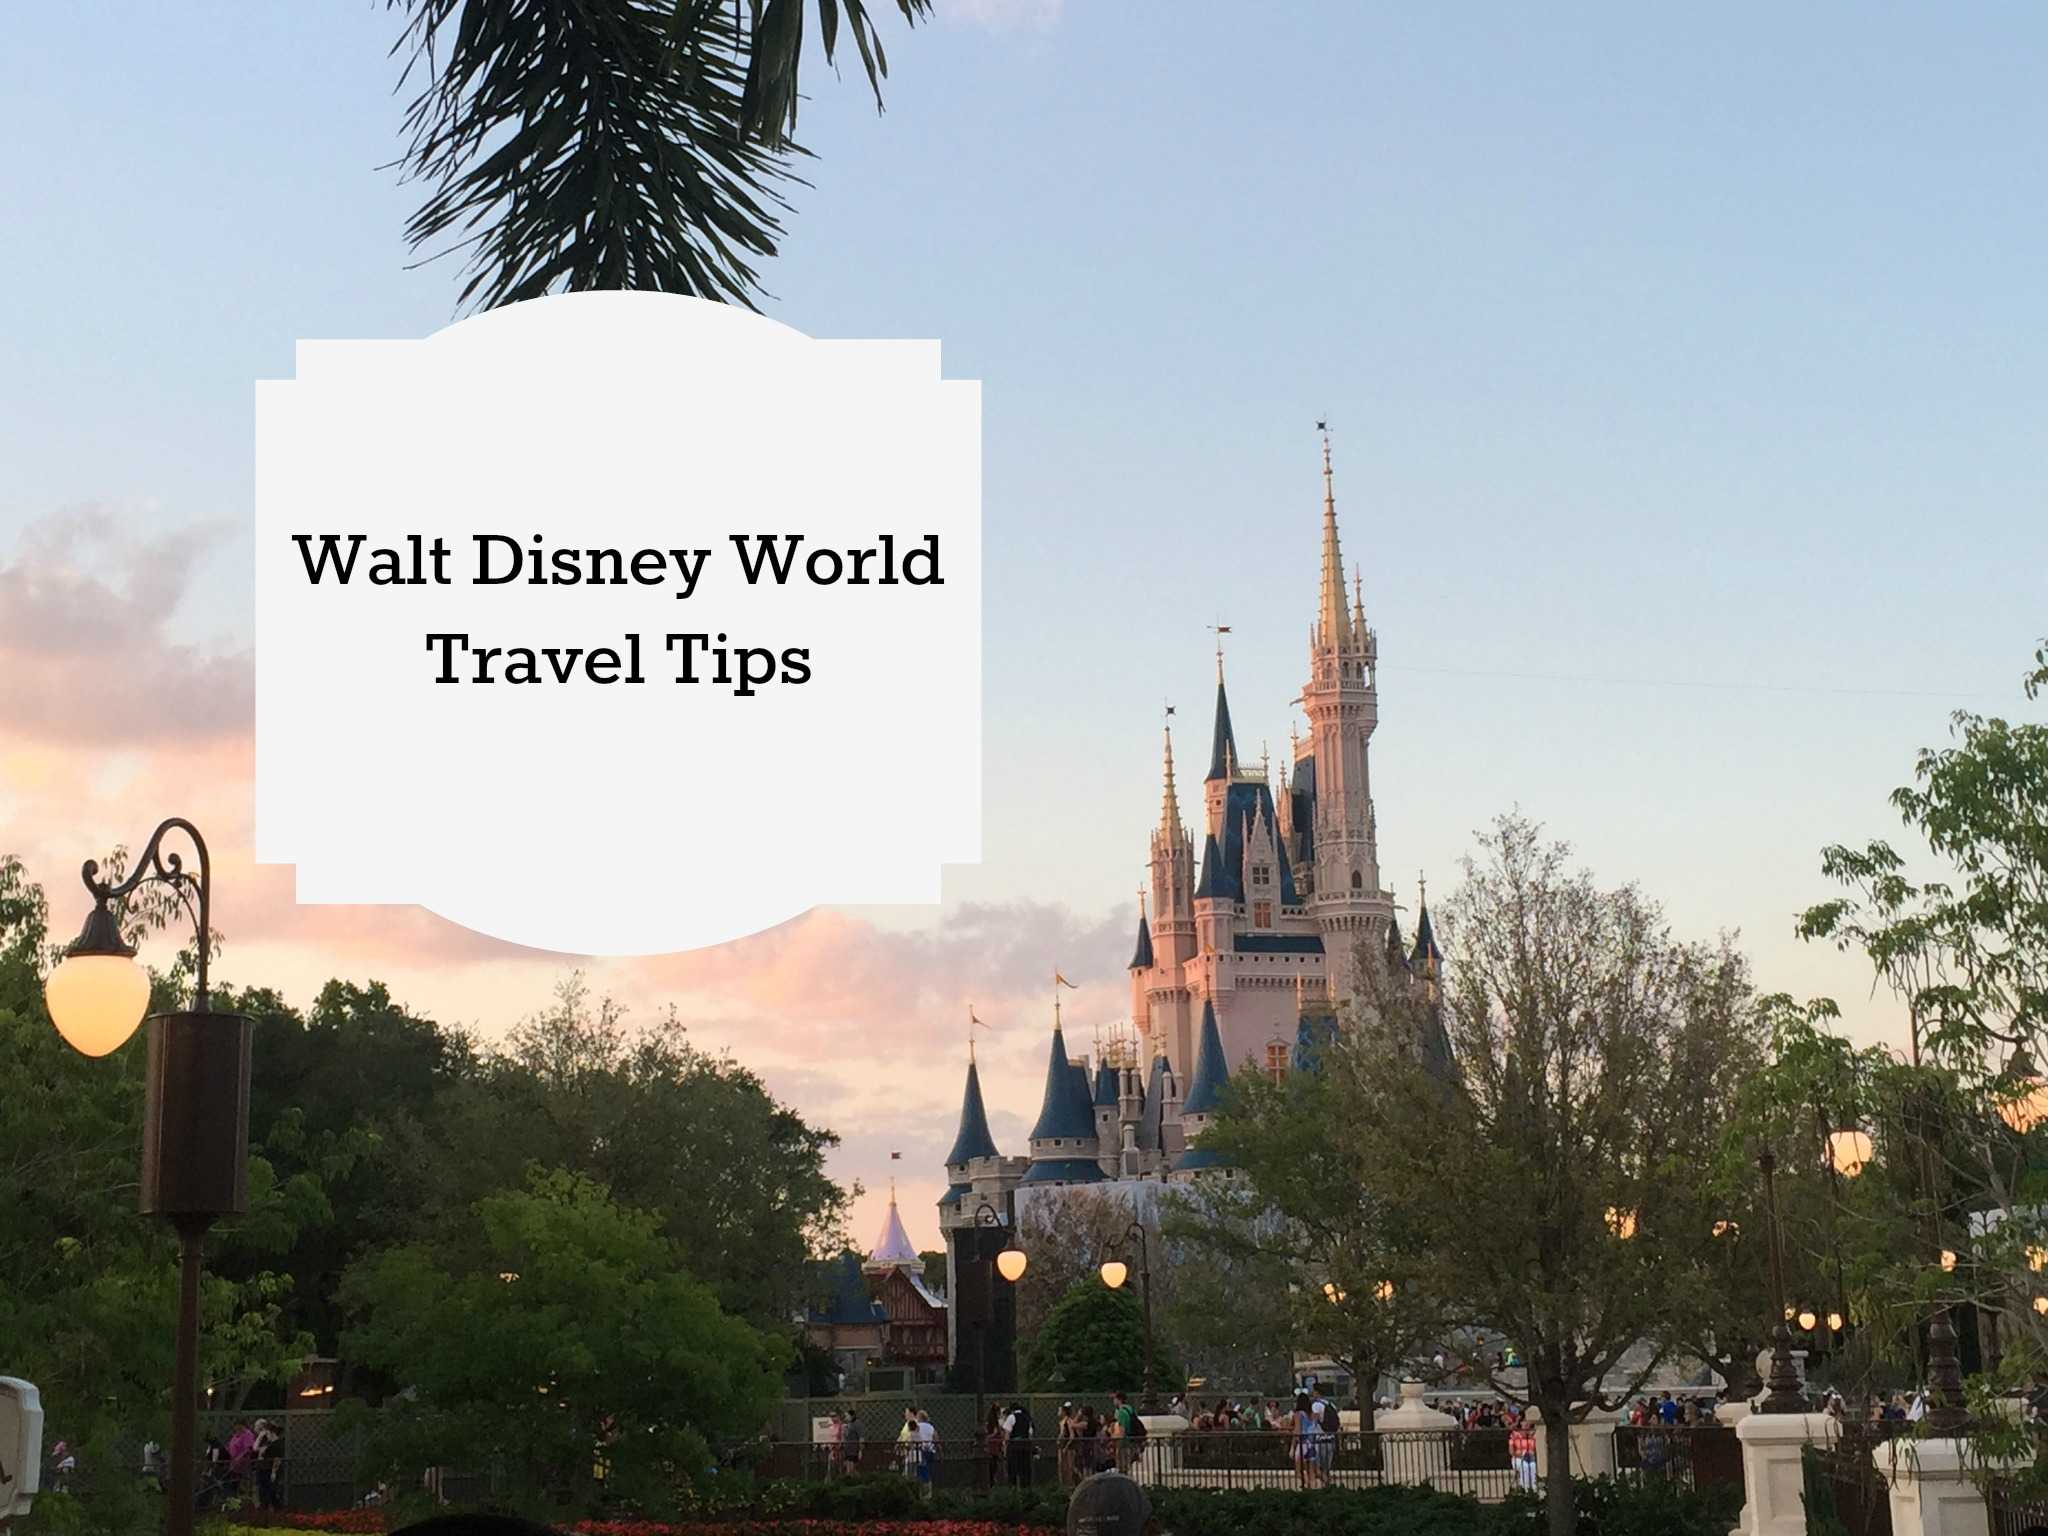 Tips to plan your next Walt Disney World vacation